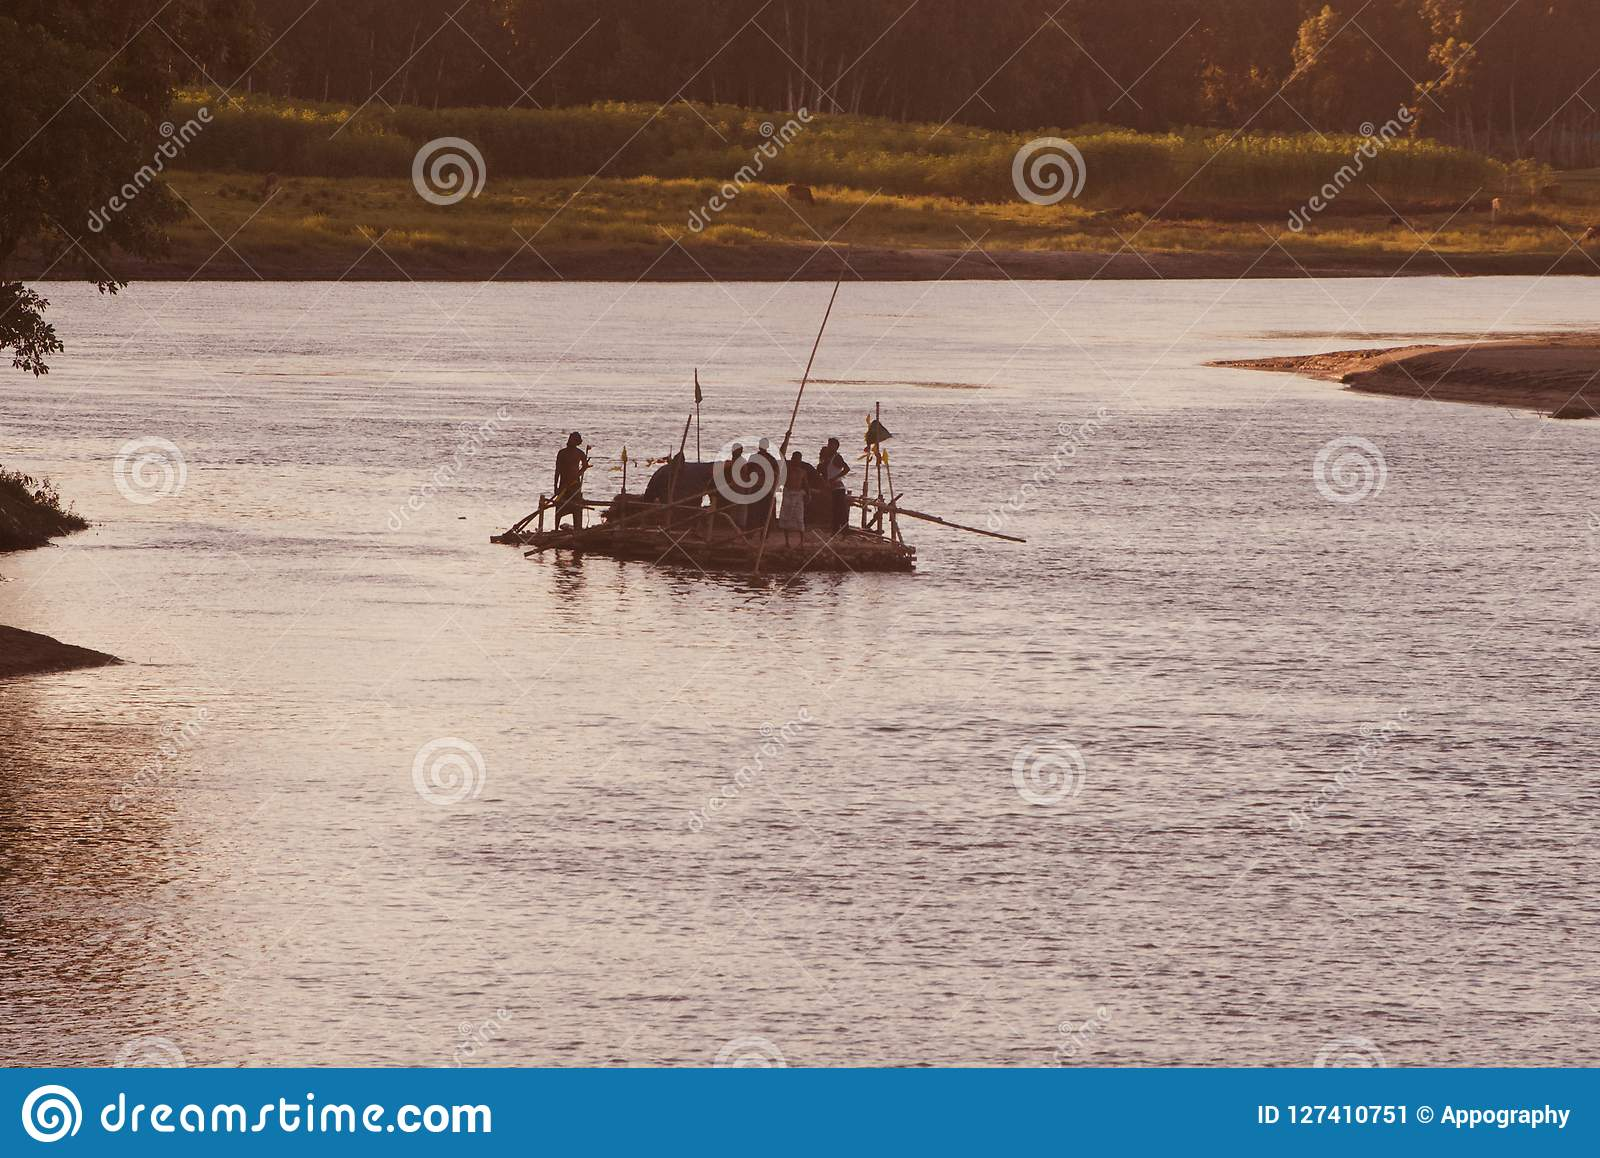 People travelling on a traditional boat in Bangladesh